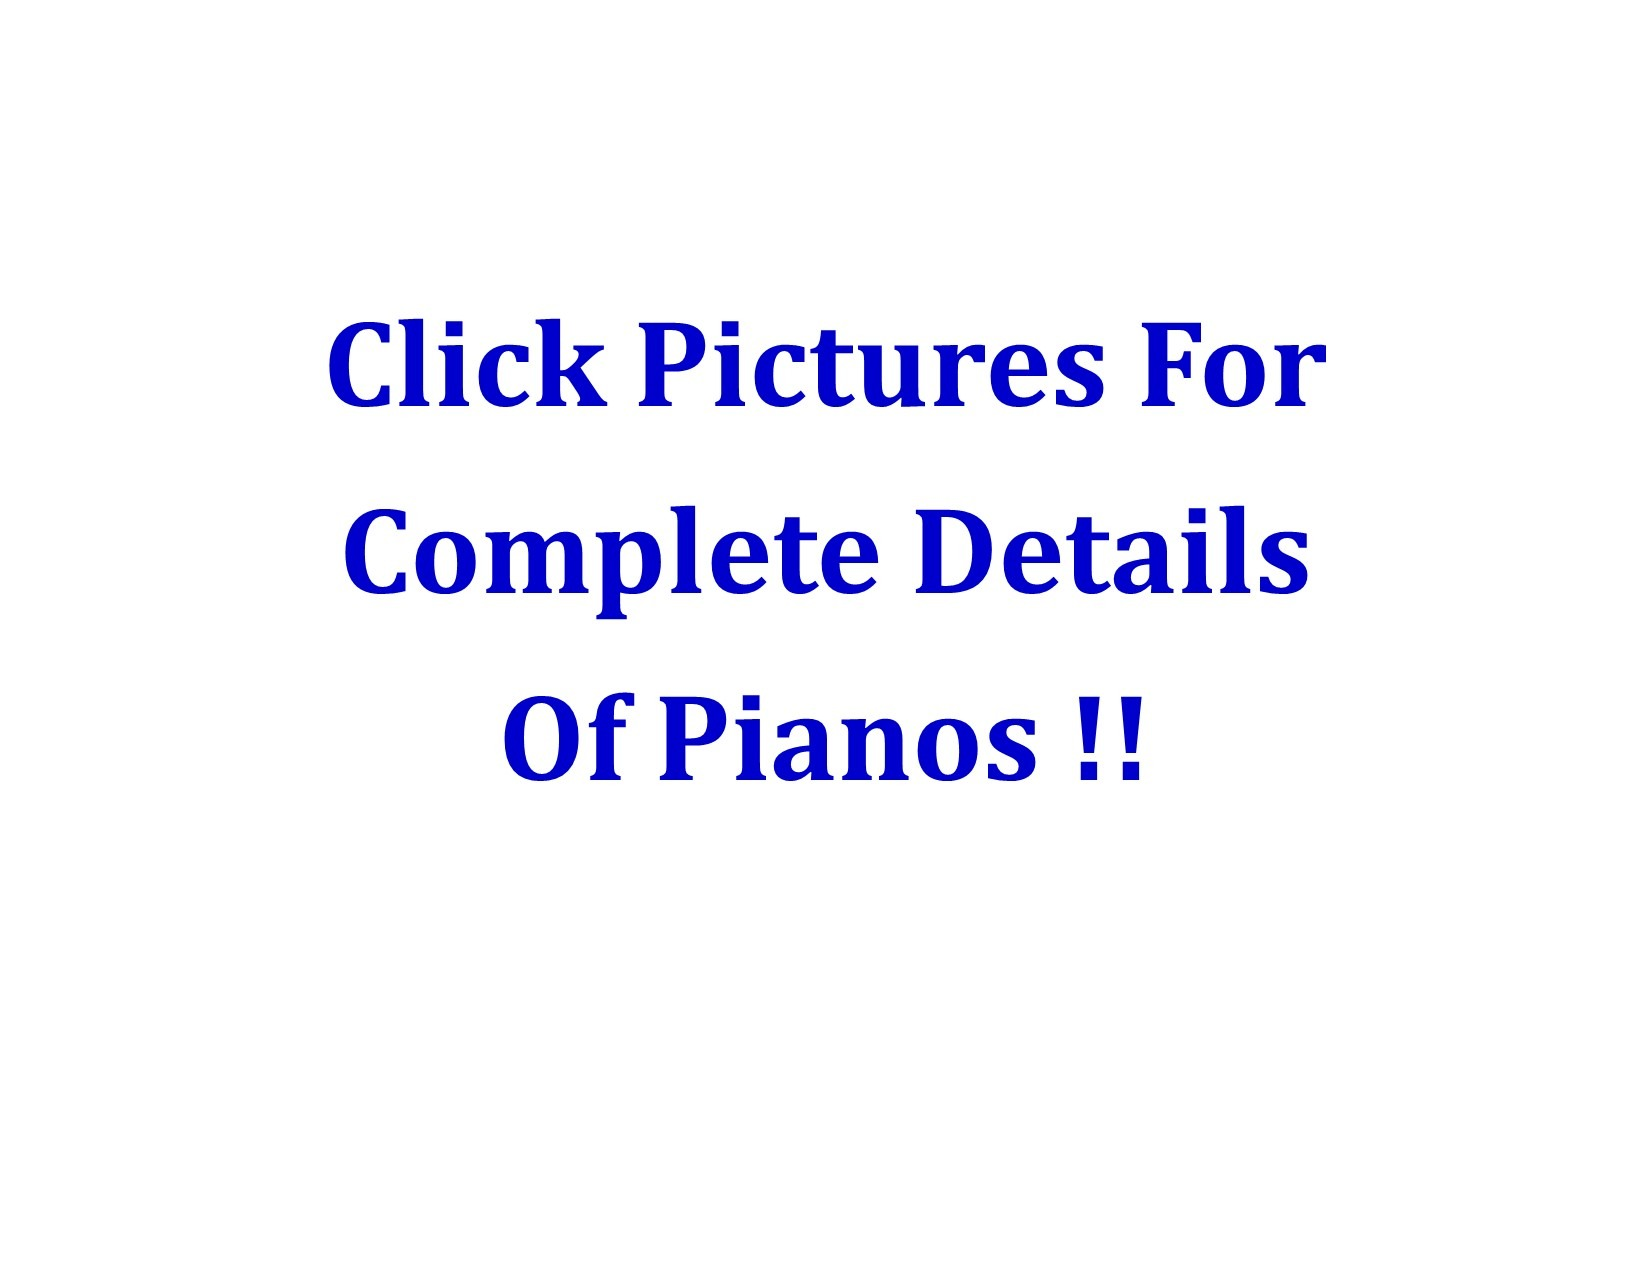 15709- Click Pictures For Complete Details of Pianos !!